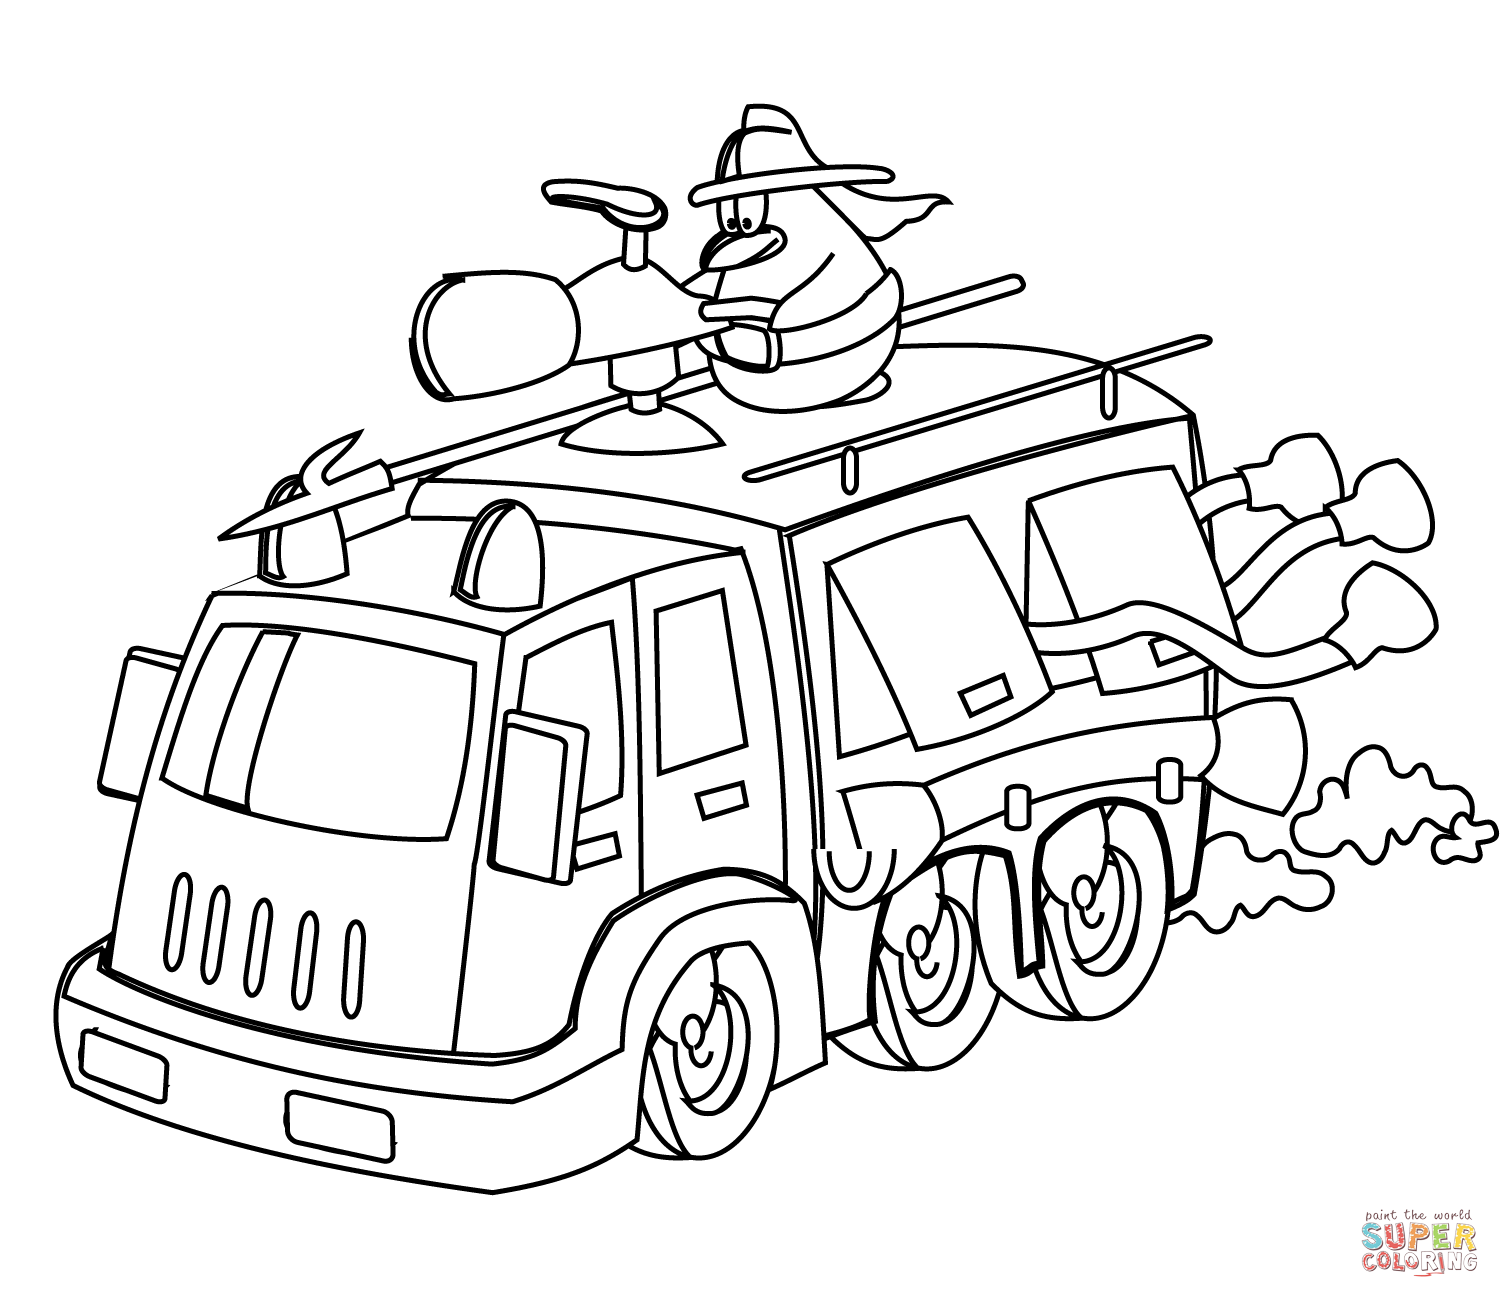 Free Fire Truck Coloring Pages - Coloring Home